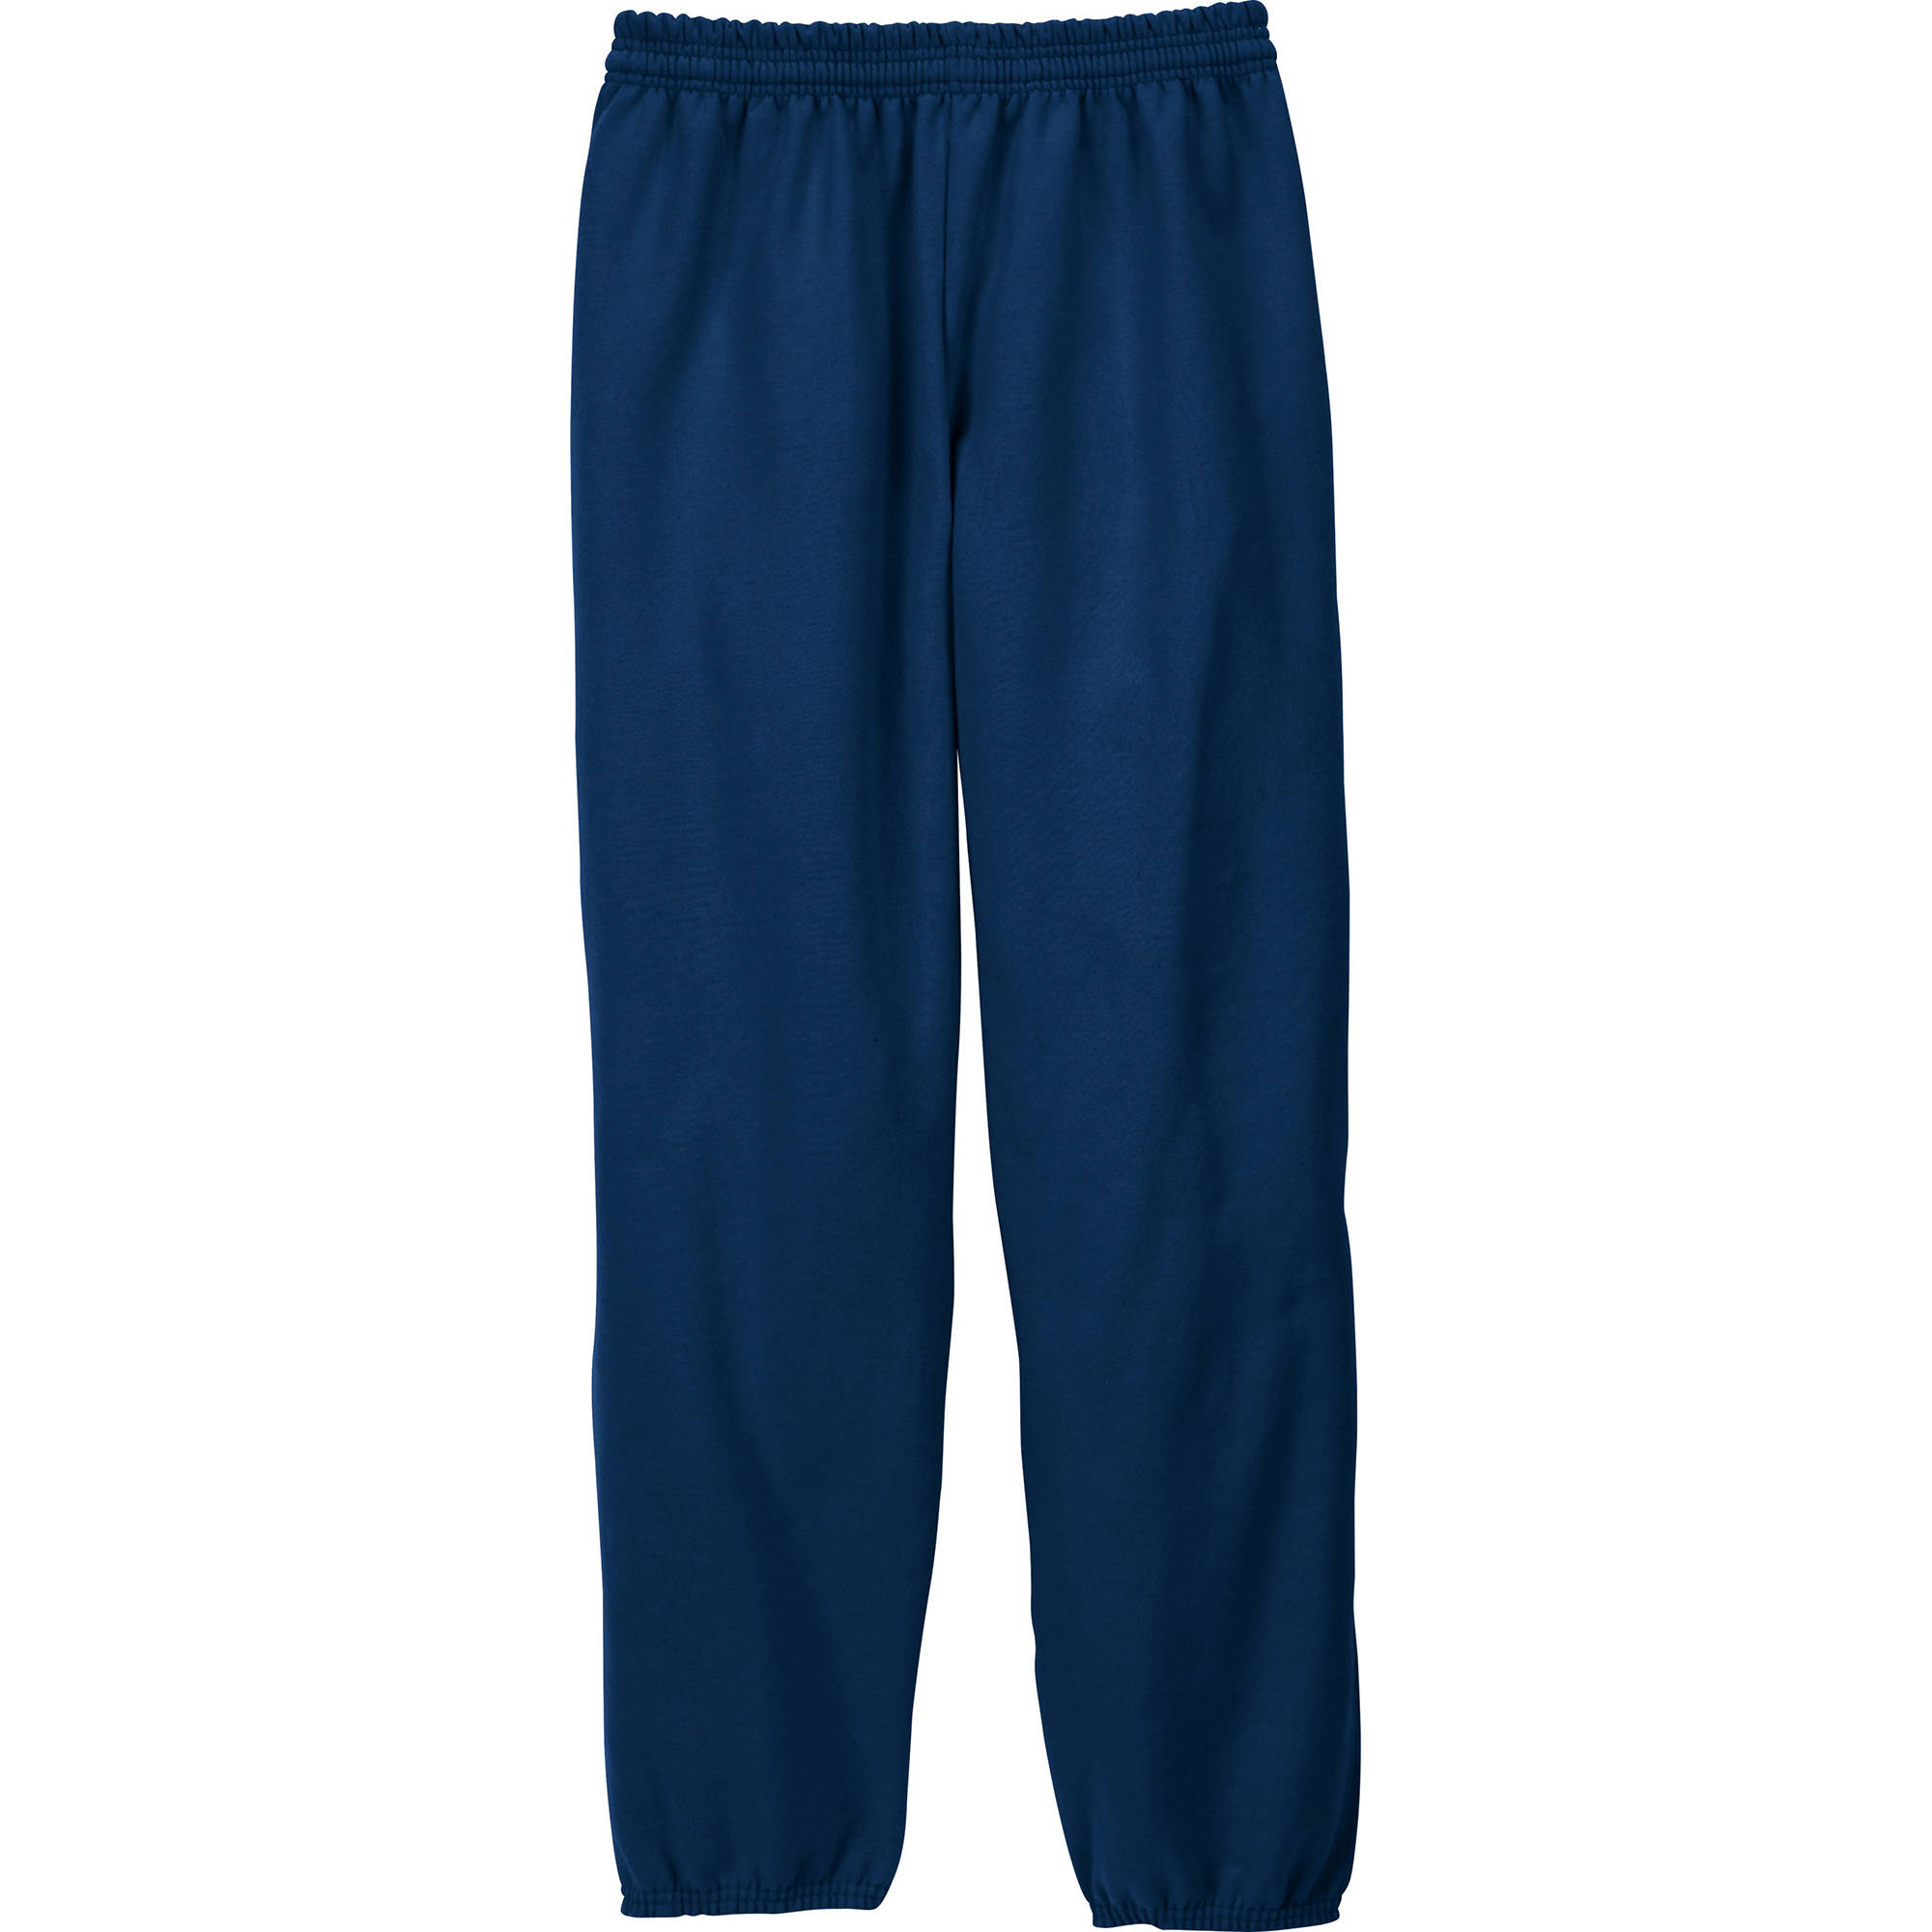 Hanes Men's EcoSmart Fleece Sweatpant - Walmart.com